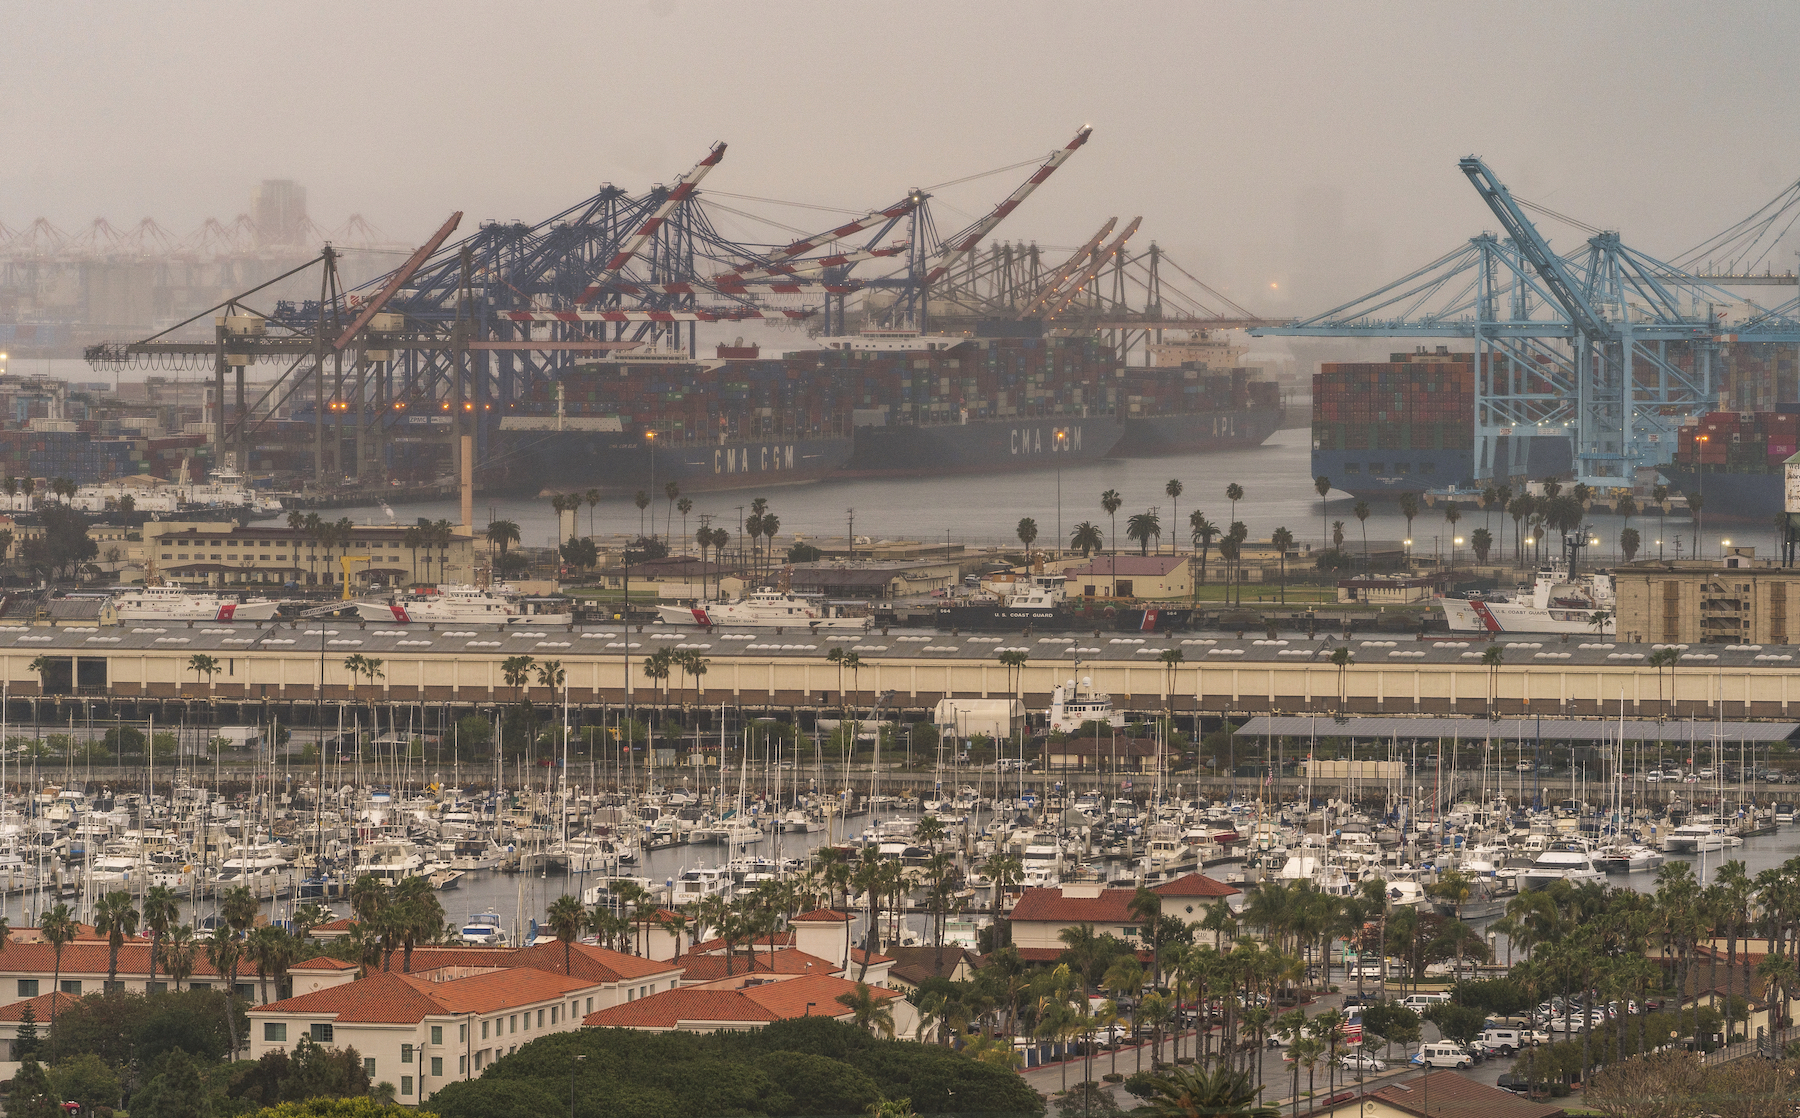 Container cargo ships are seen docked in the Port of Los Angeles.